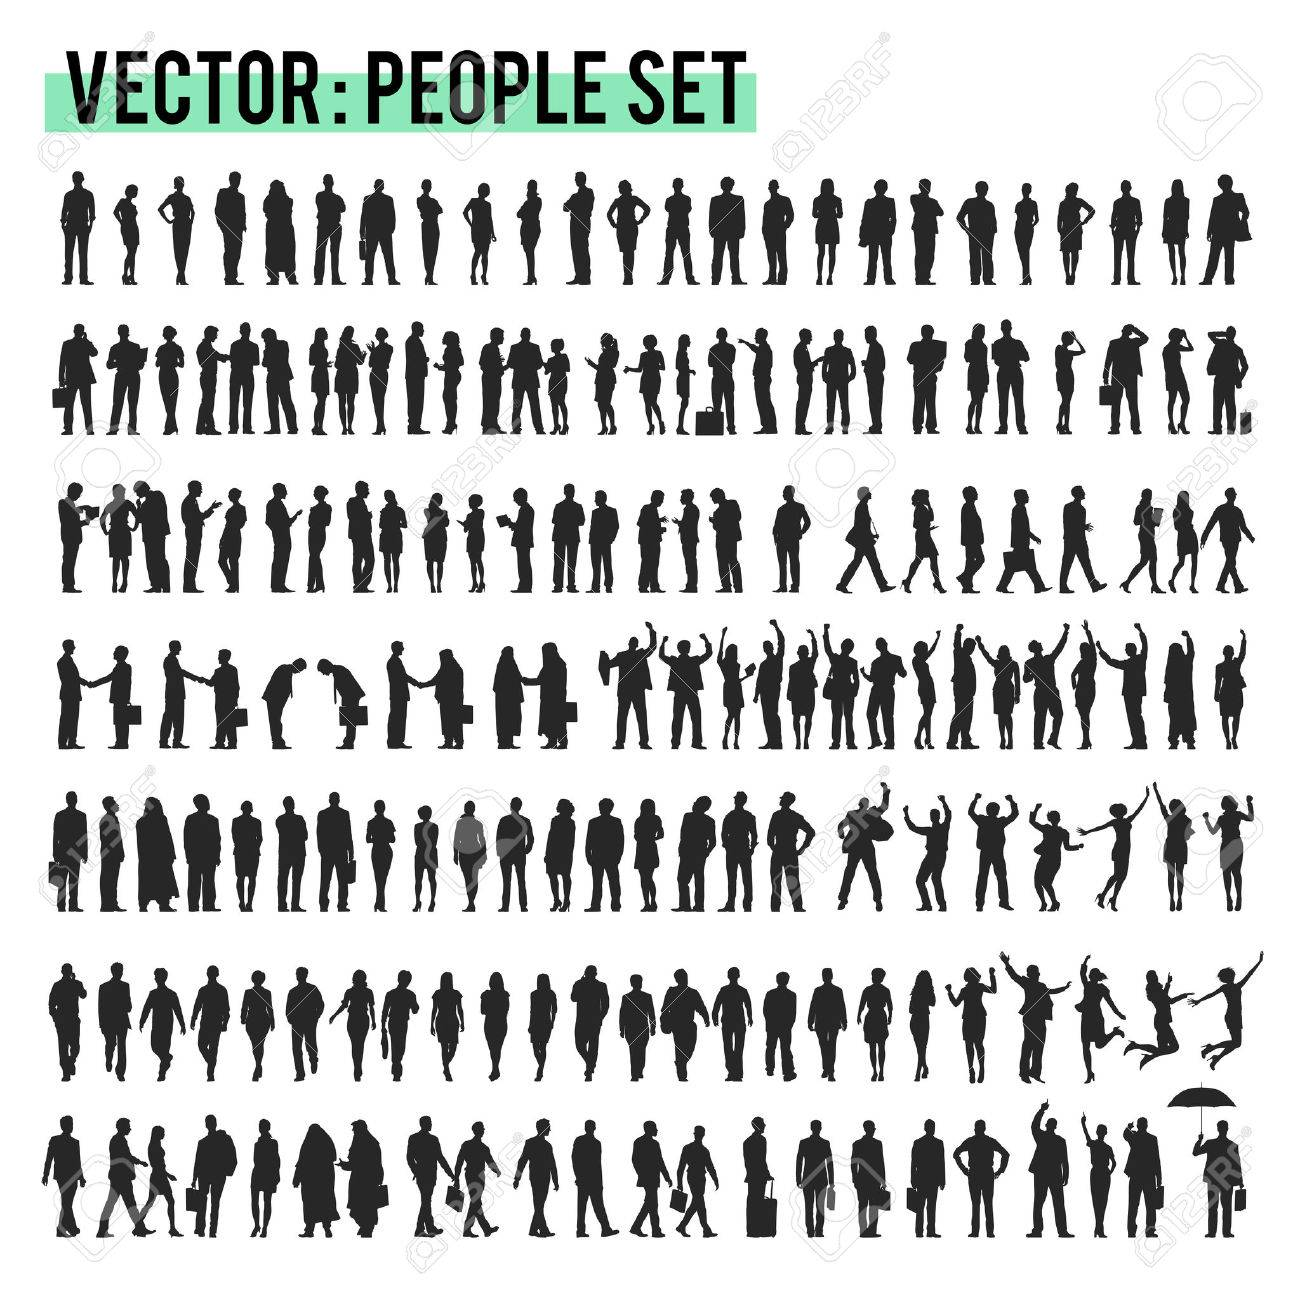 Vector Business People Corporate Company Concept - 57620530